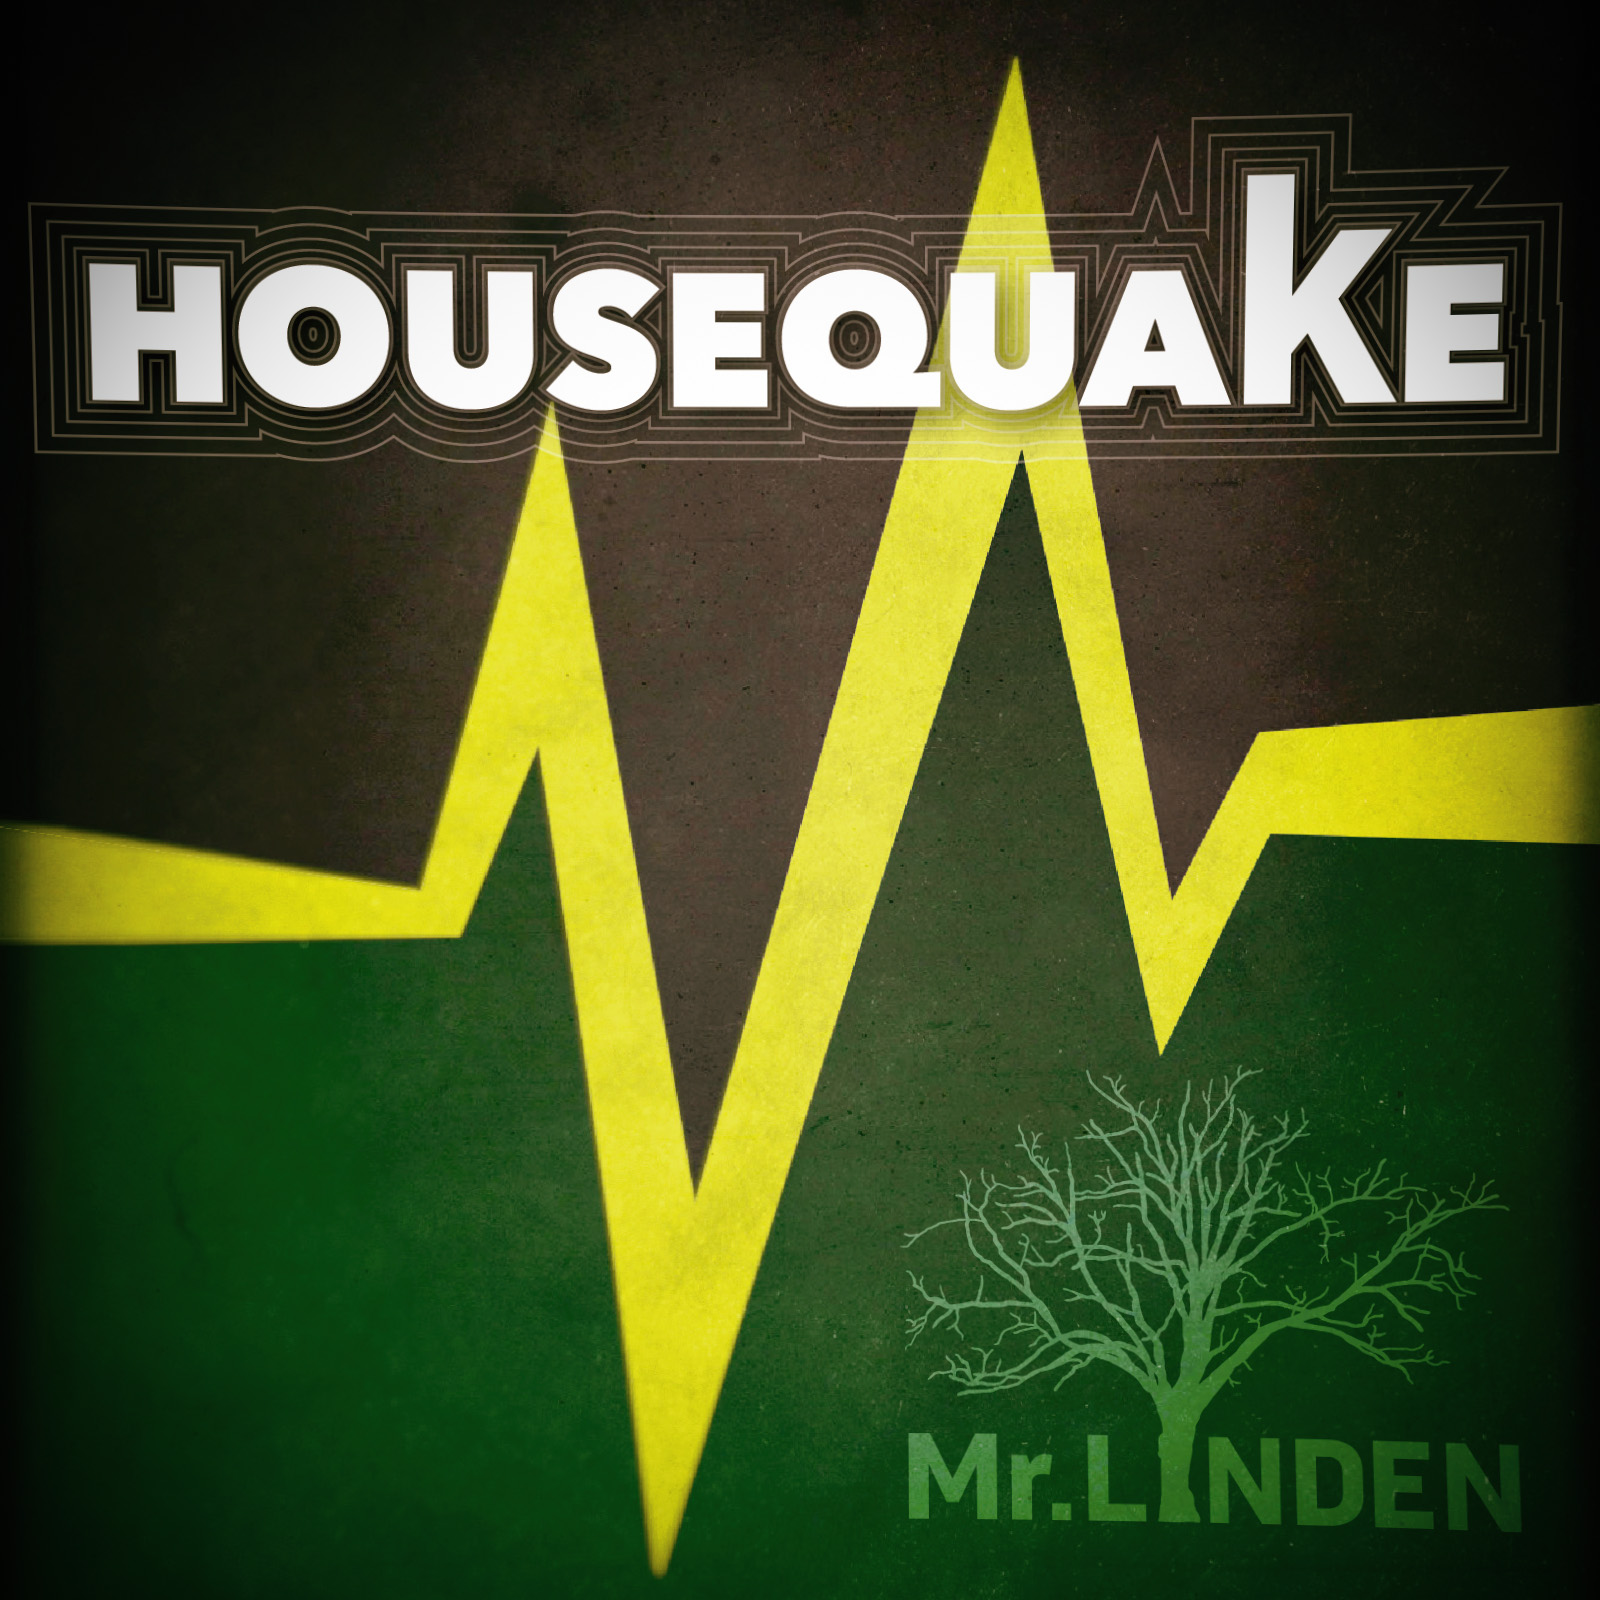 HouseQuake mix